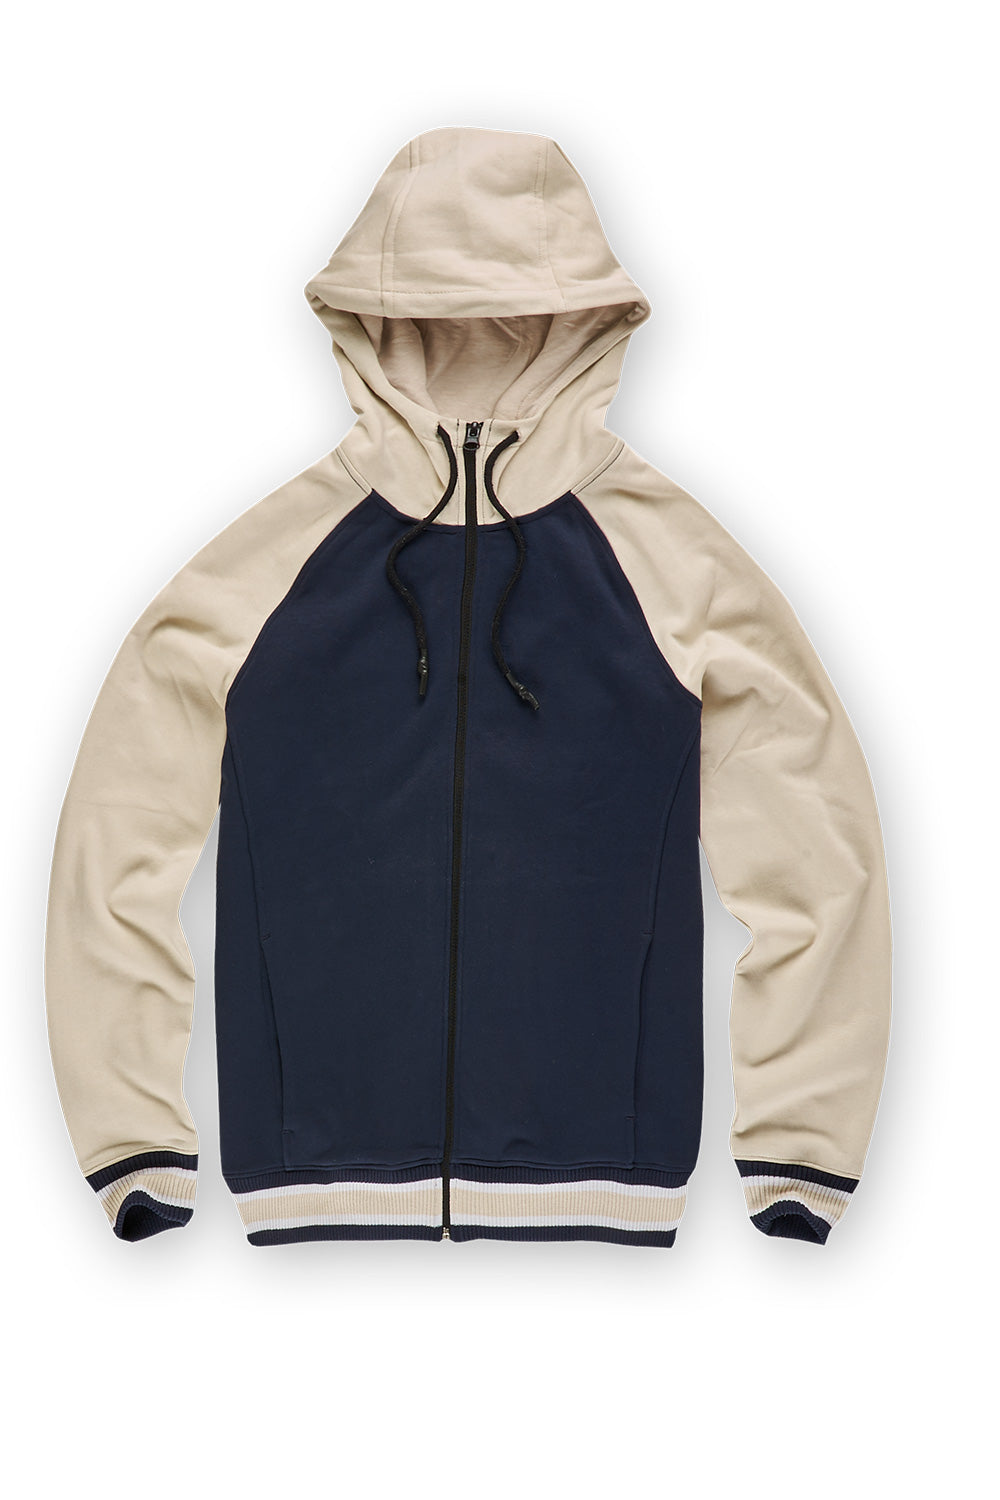 Jordan Craig - Fairfax Zip Up Hoodie (Bone)